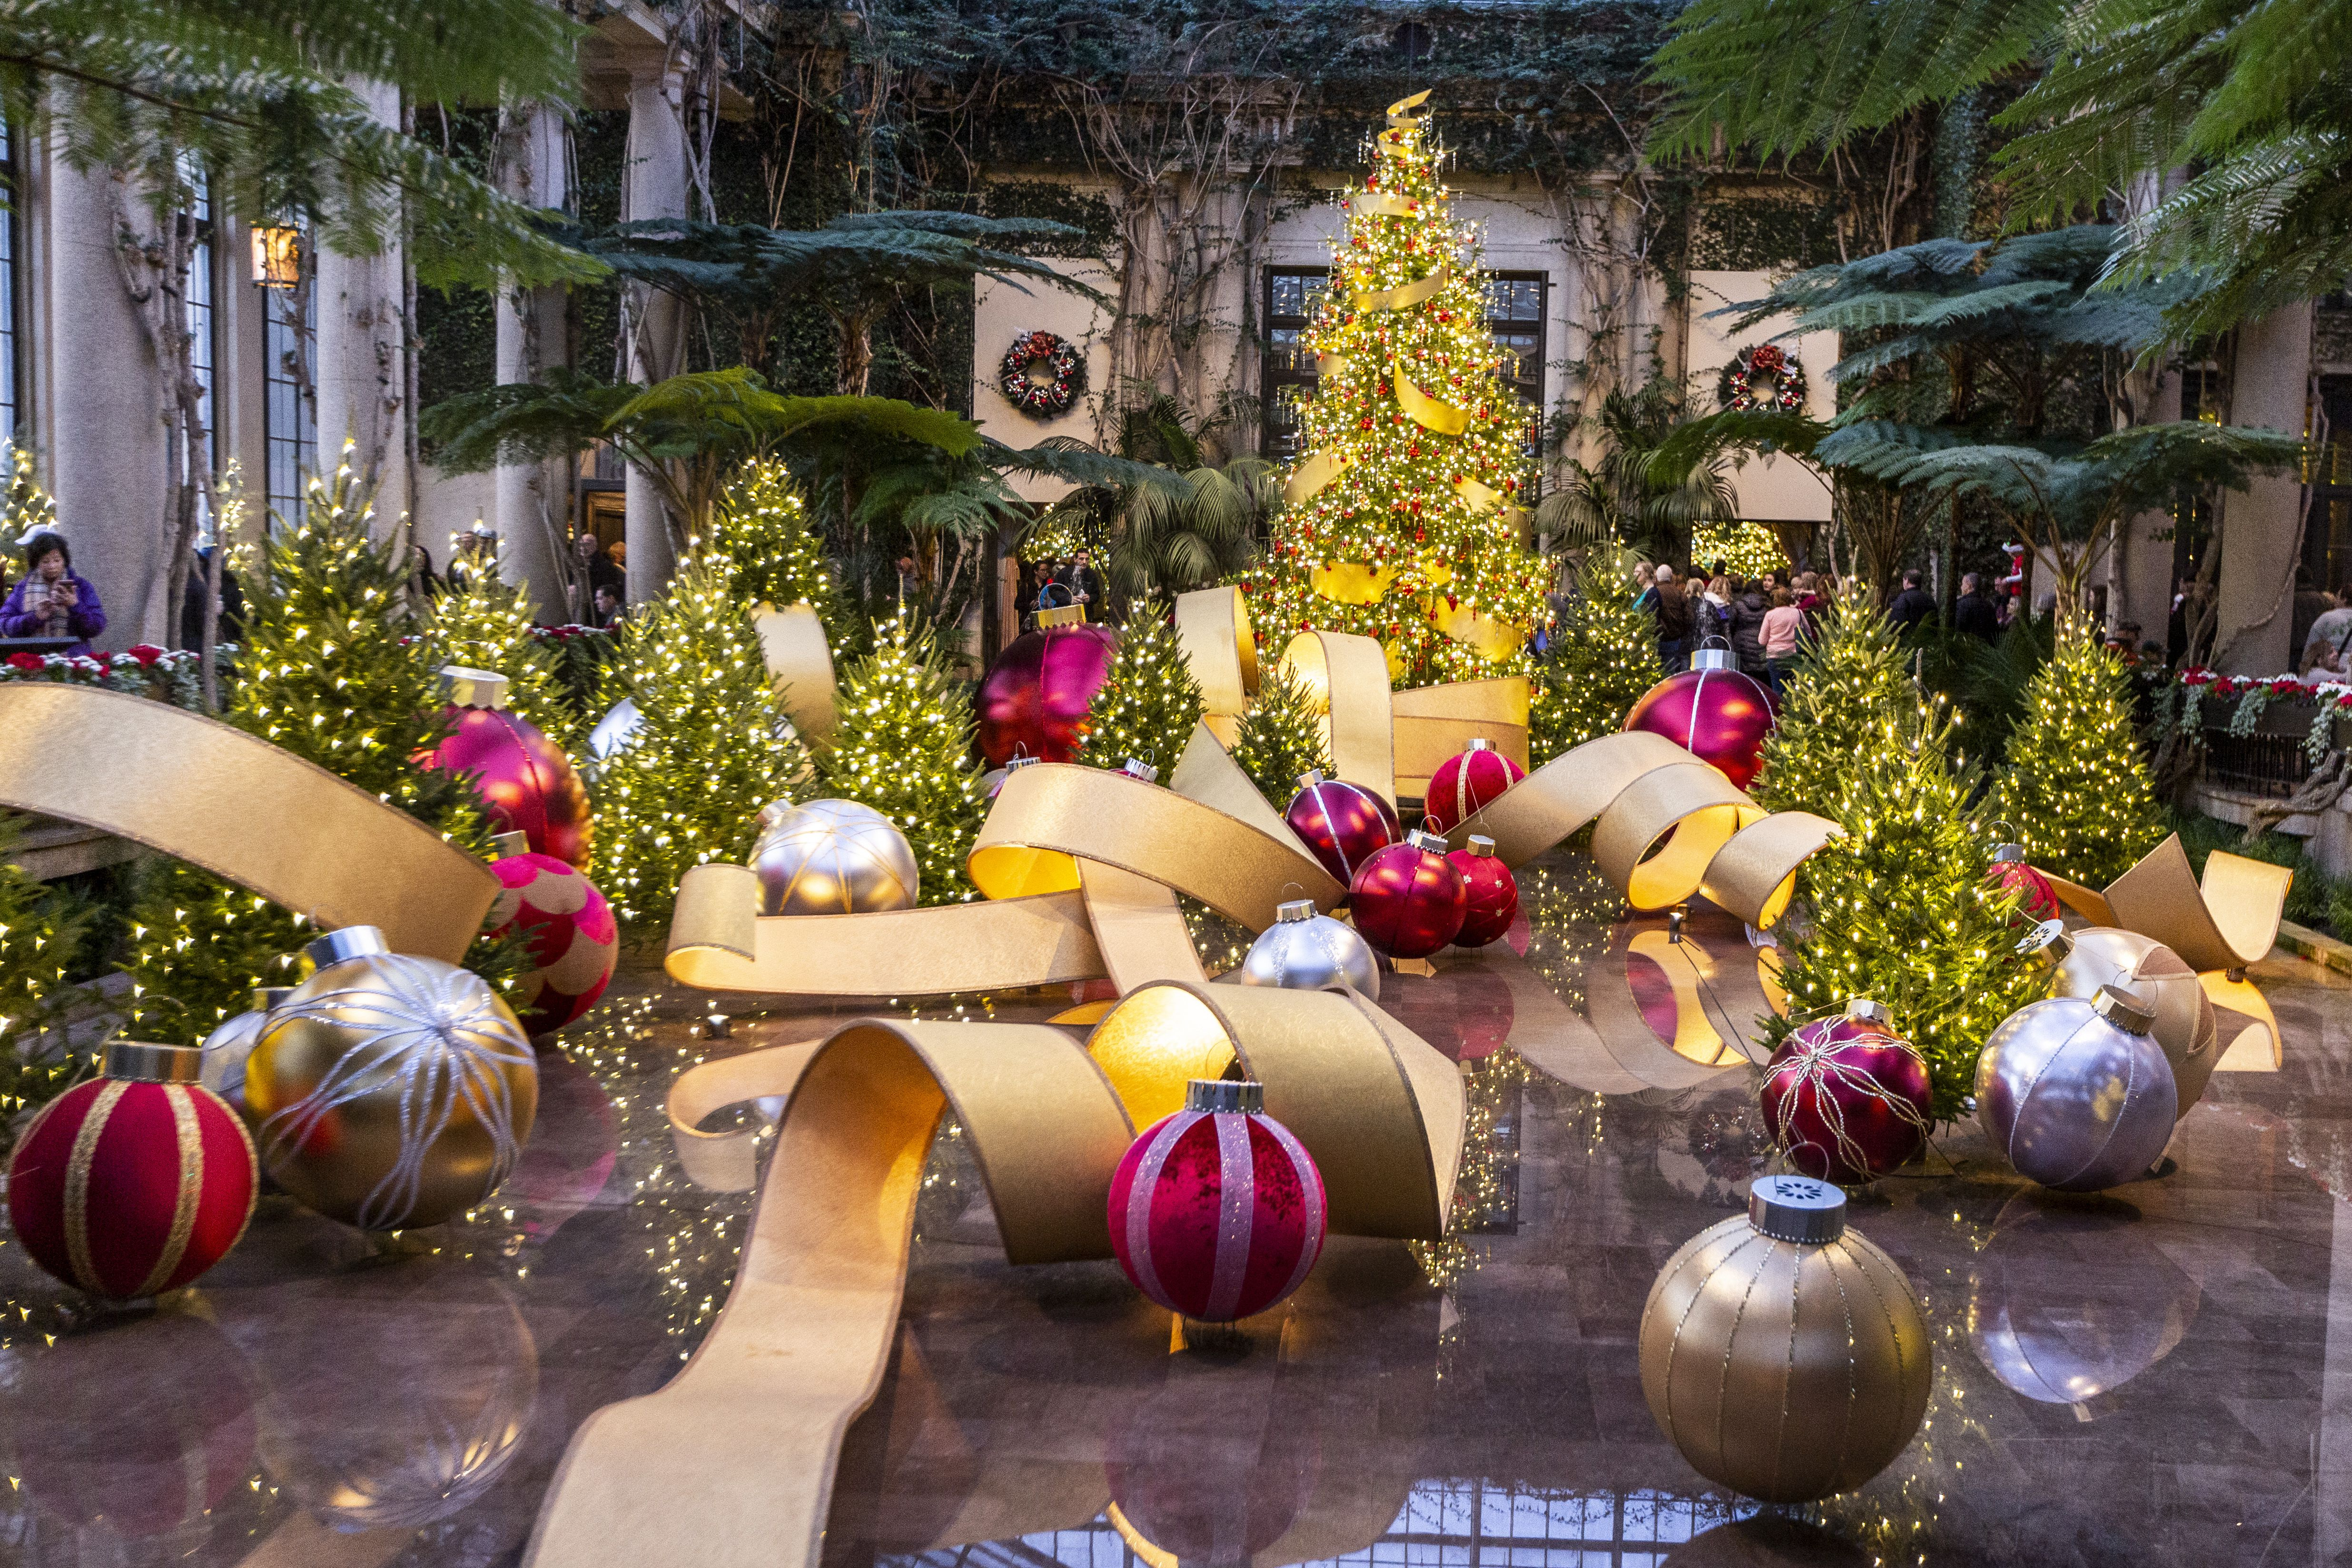 Longwood Gardens to bring back massive Christmas display in